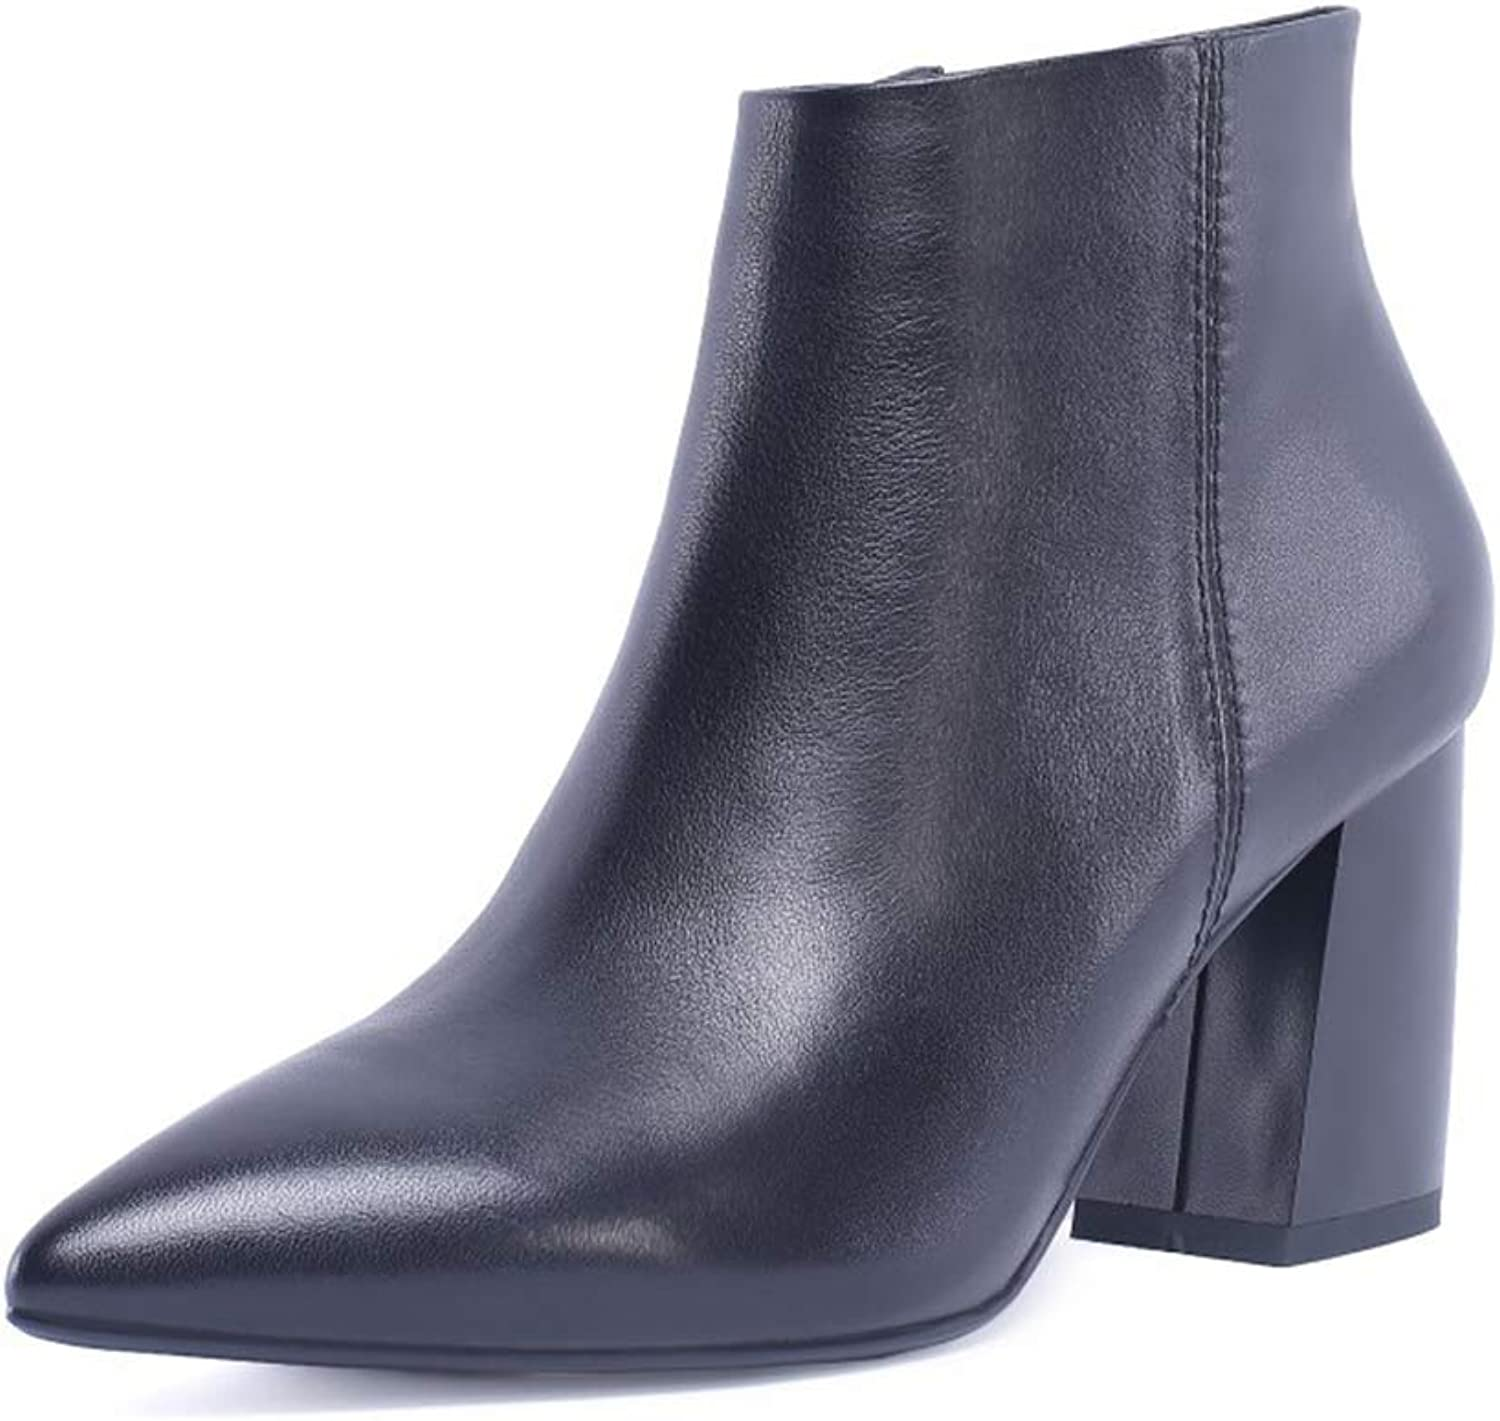 Women's Booties, Fall Winter Leather Martin Boots Ladies Plus Velvet Thick Heel Side Zipper Fashion Ankle Boots (color   B, Size   34)